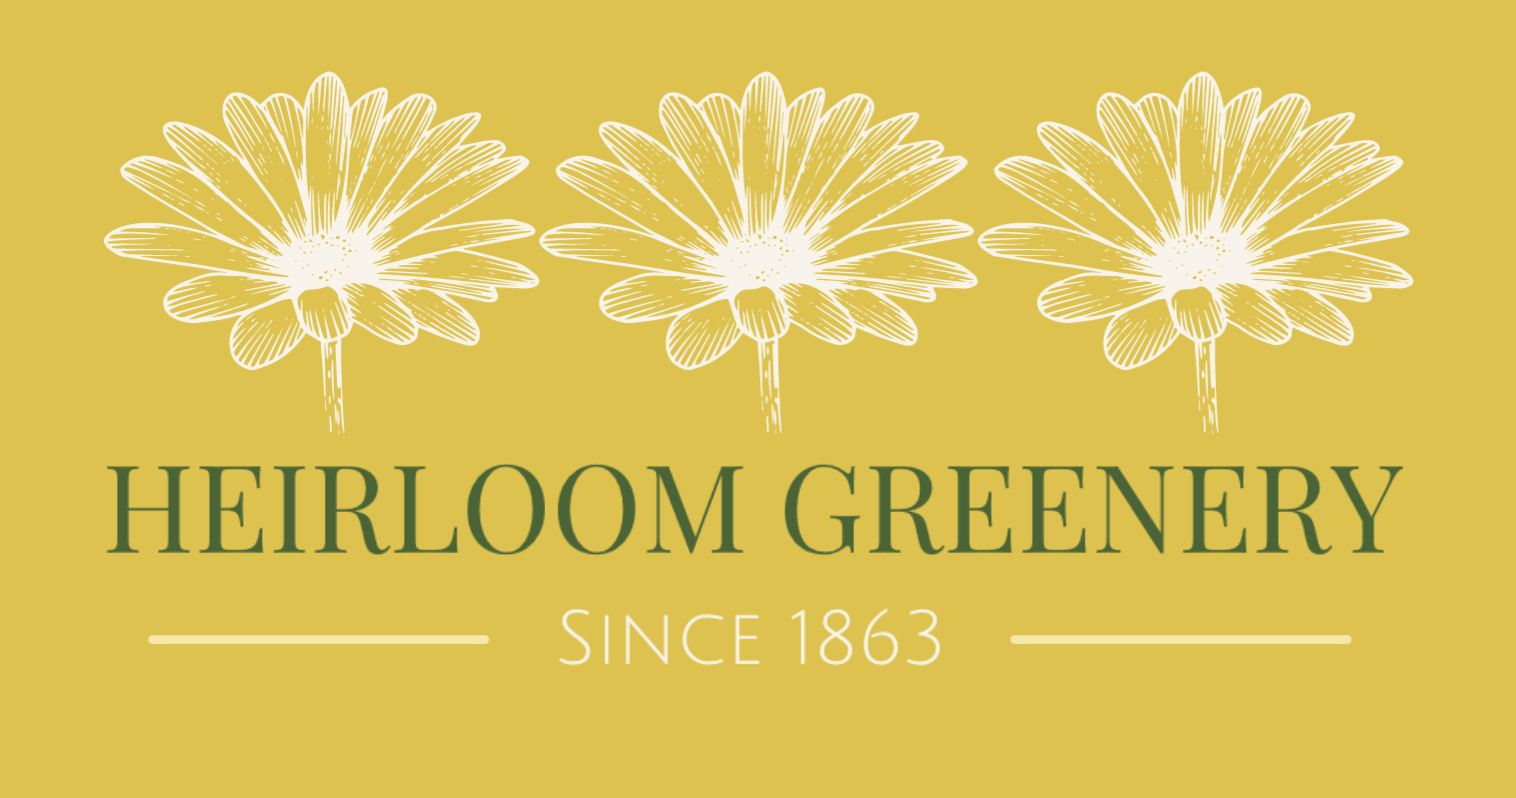 Vintage logo made with DesignEvo - Heirloom Greenery